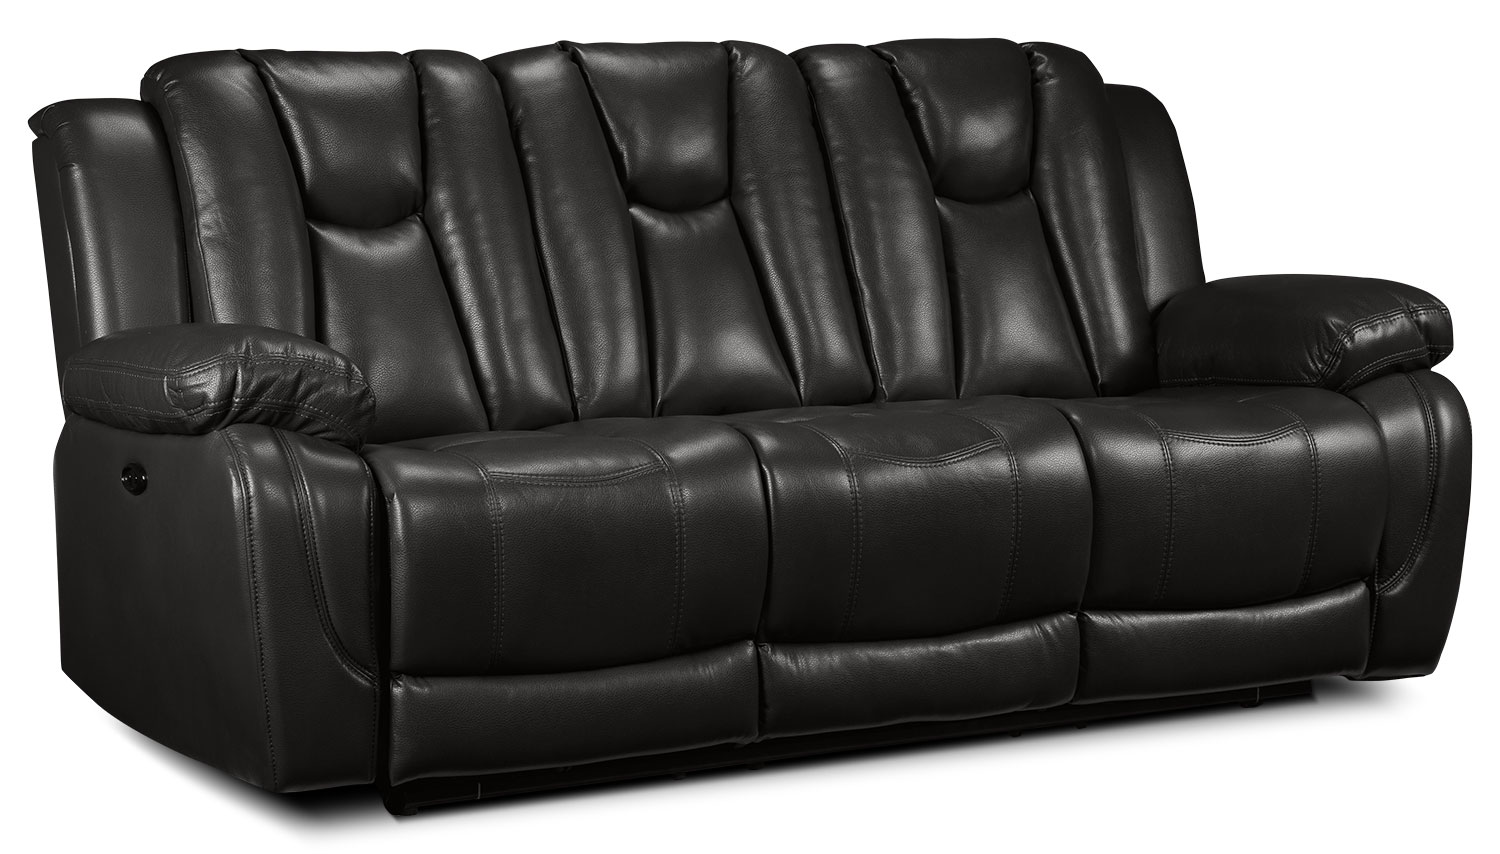 Living Room Furniture - Knight Power Reclining Sofa - Grey